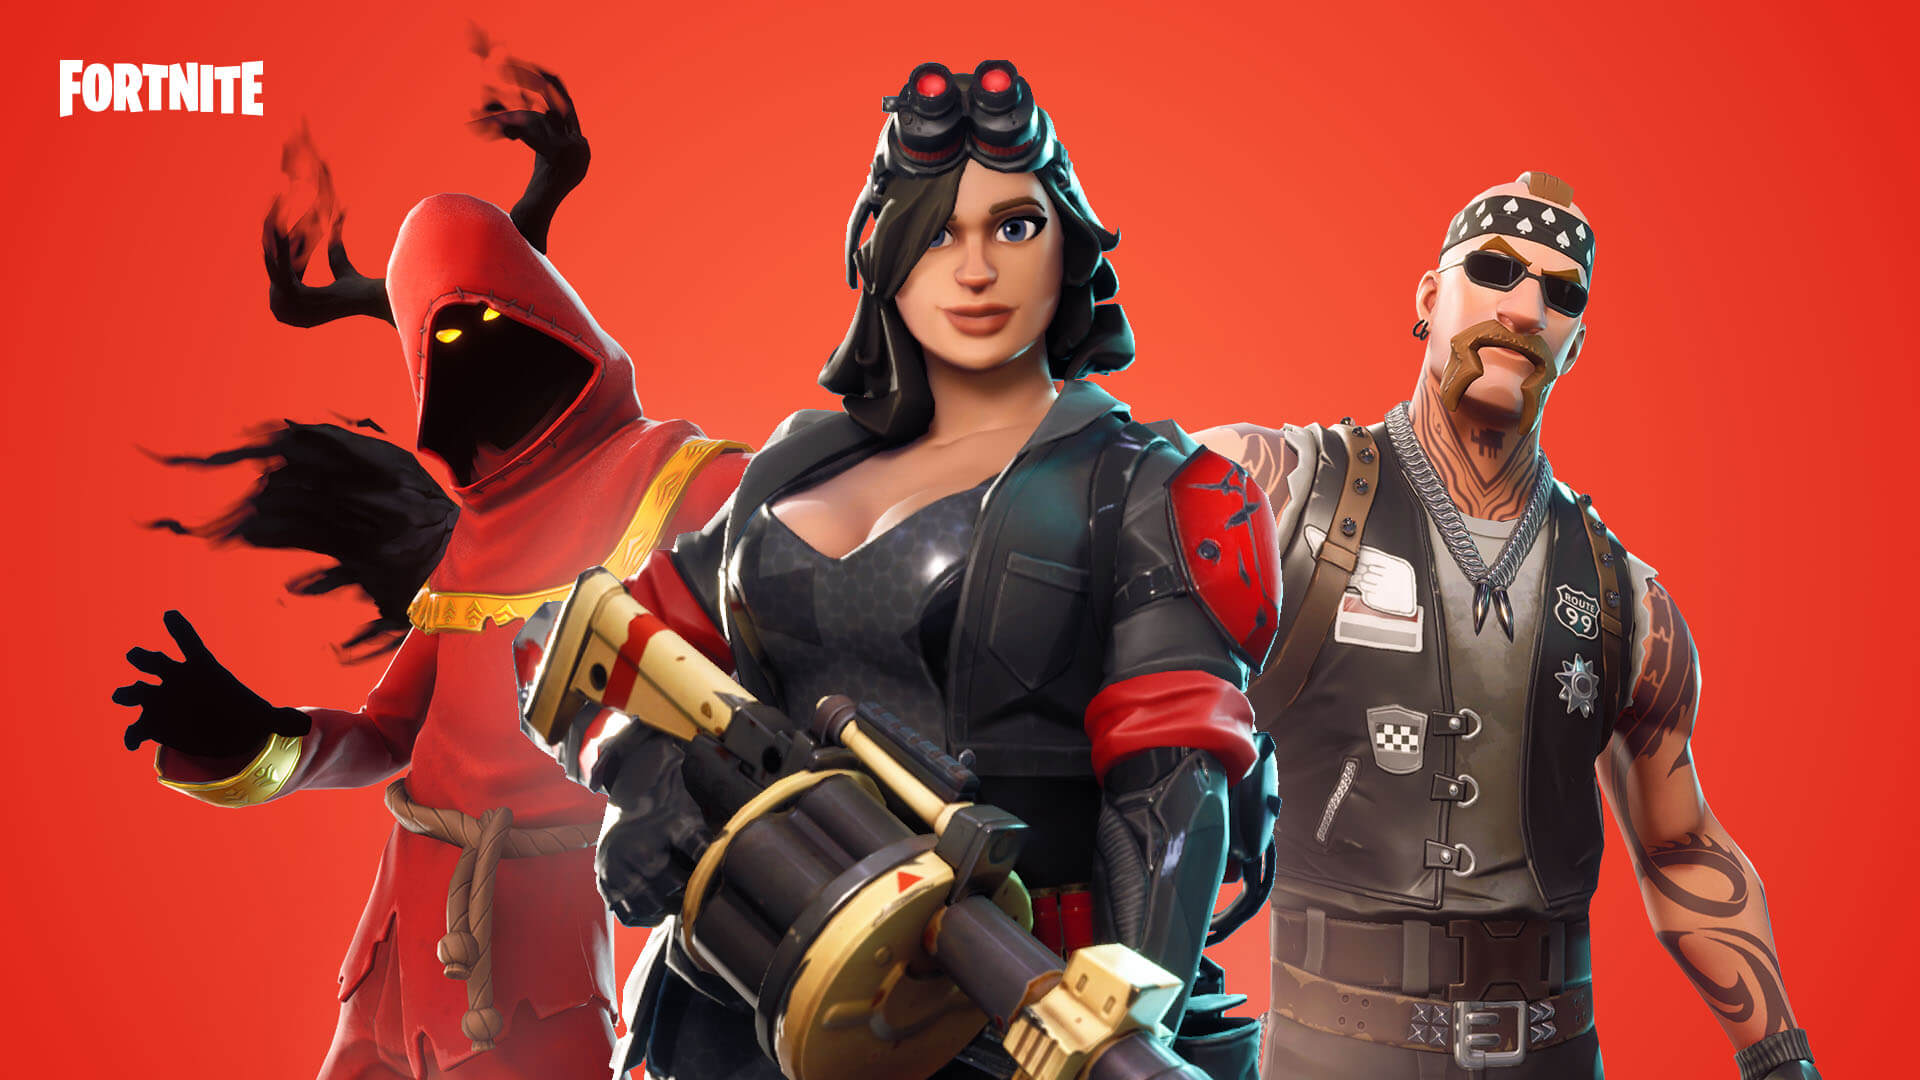 Fortnite: Patch Notes for Update 16.40 - that's what you can expect this time